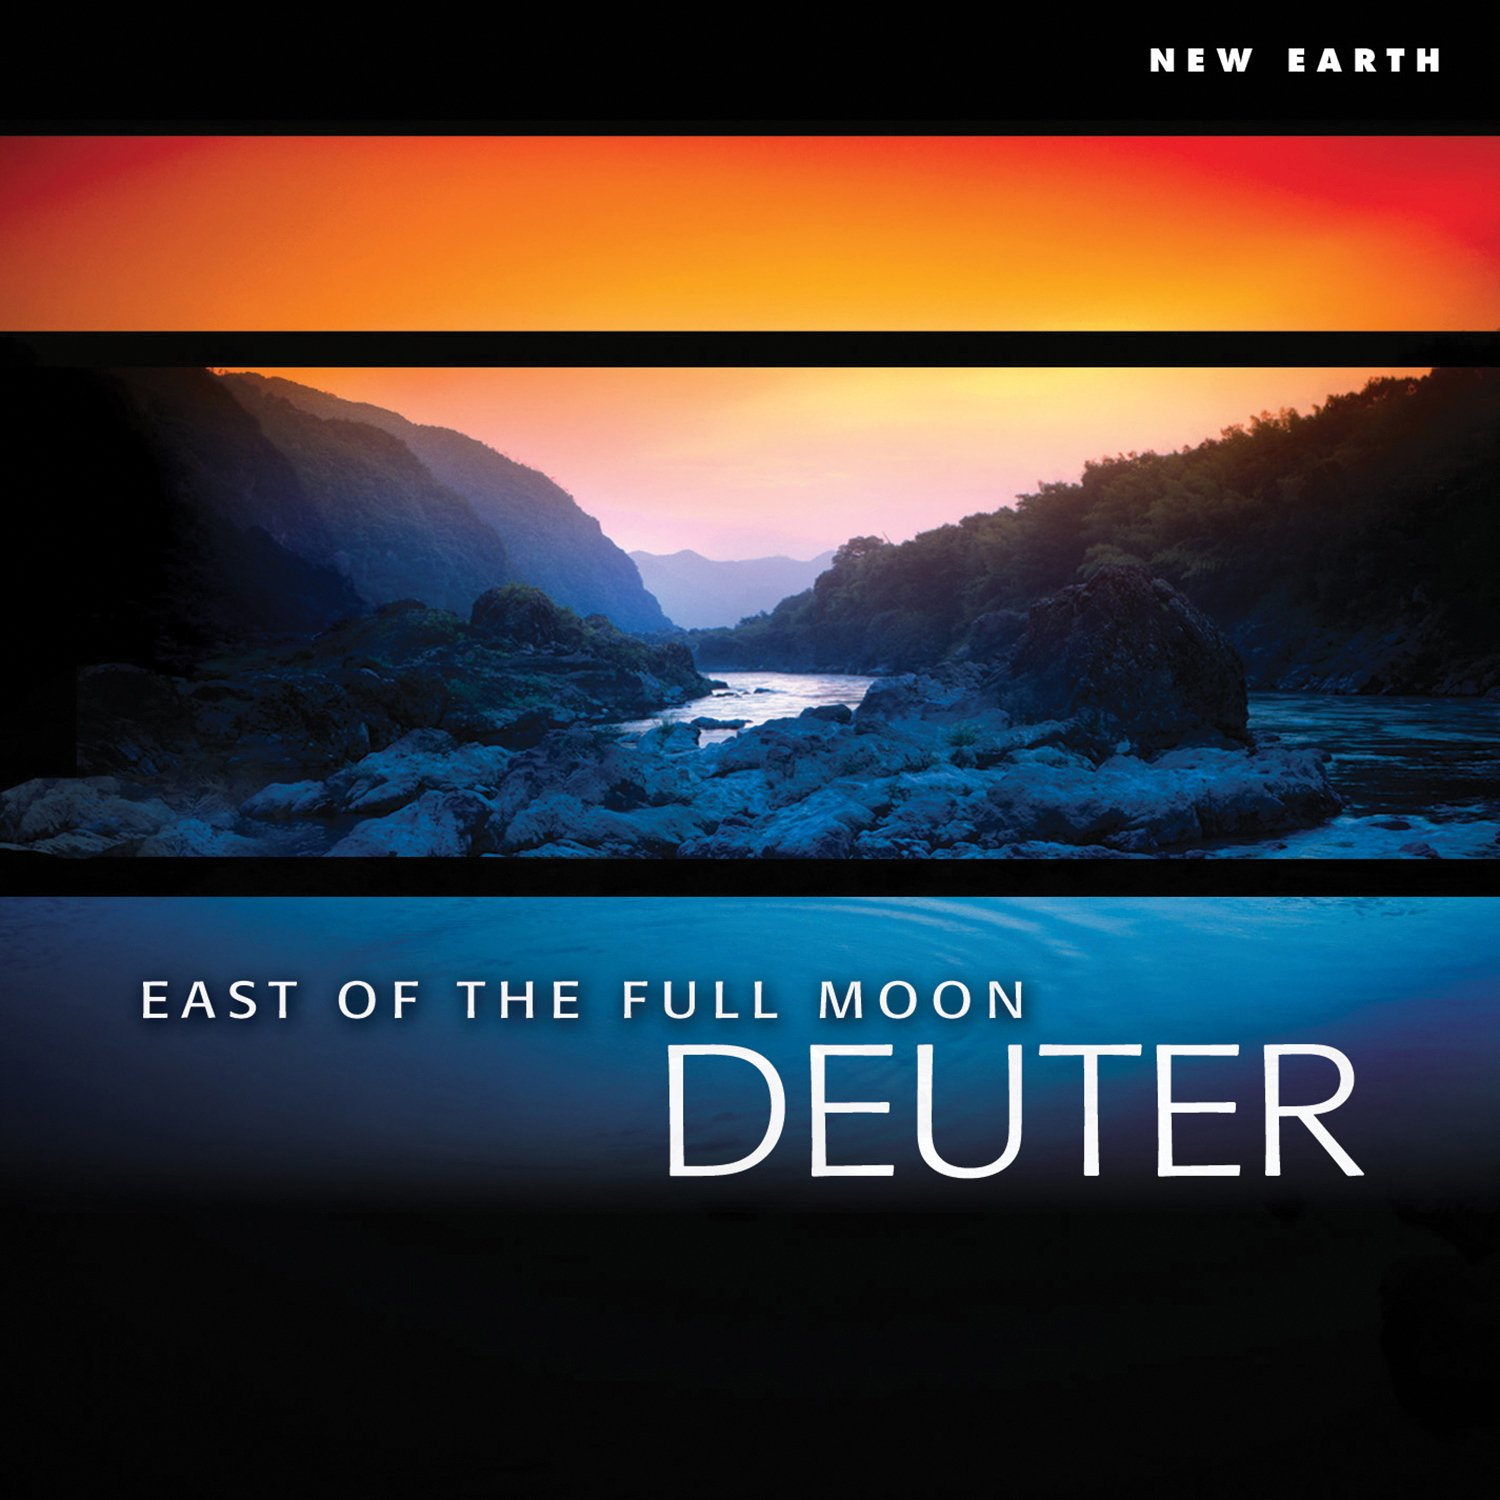 East Of The Full Moon by New Earth